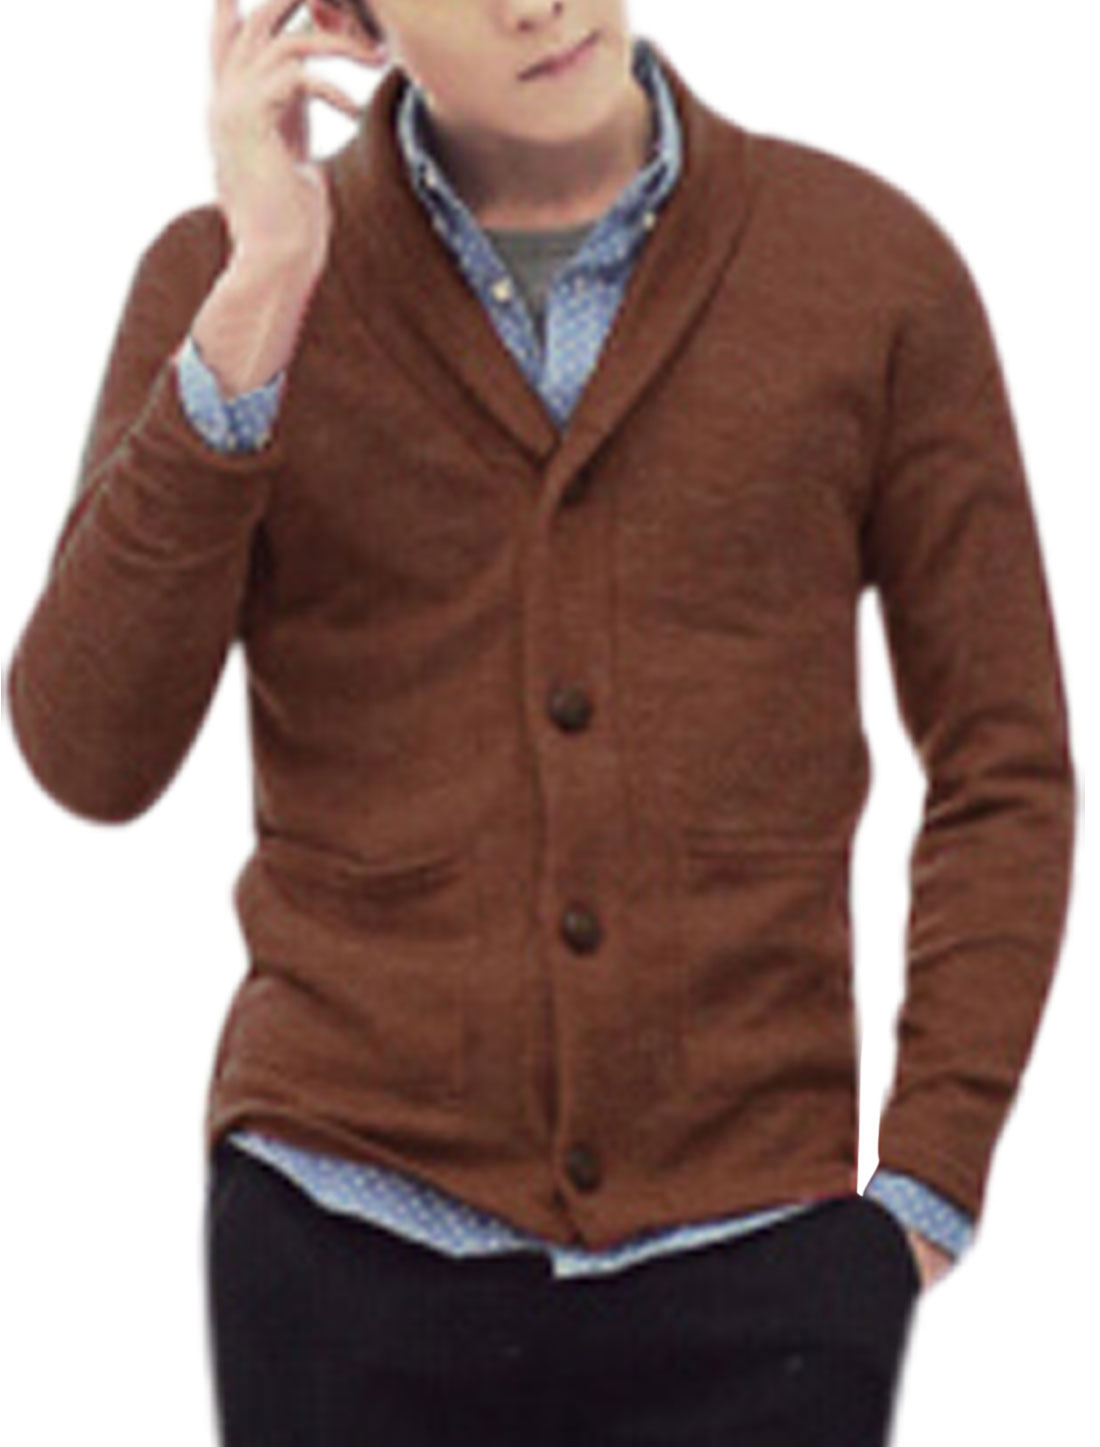 Men Single Breasted Shawl Collar Light Brown Knit Cardigan M